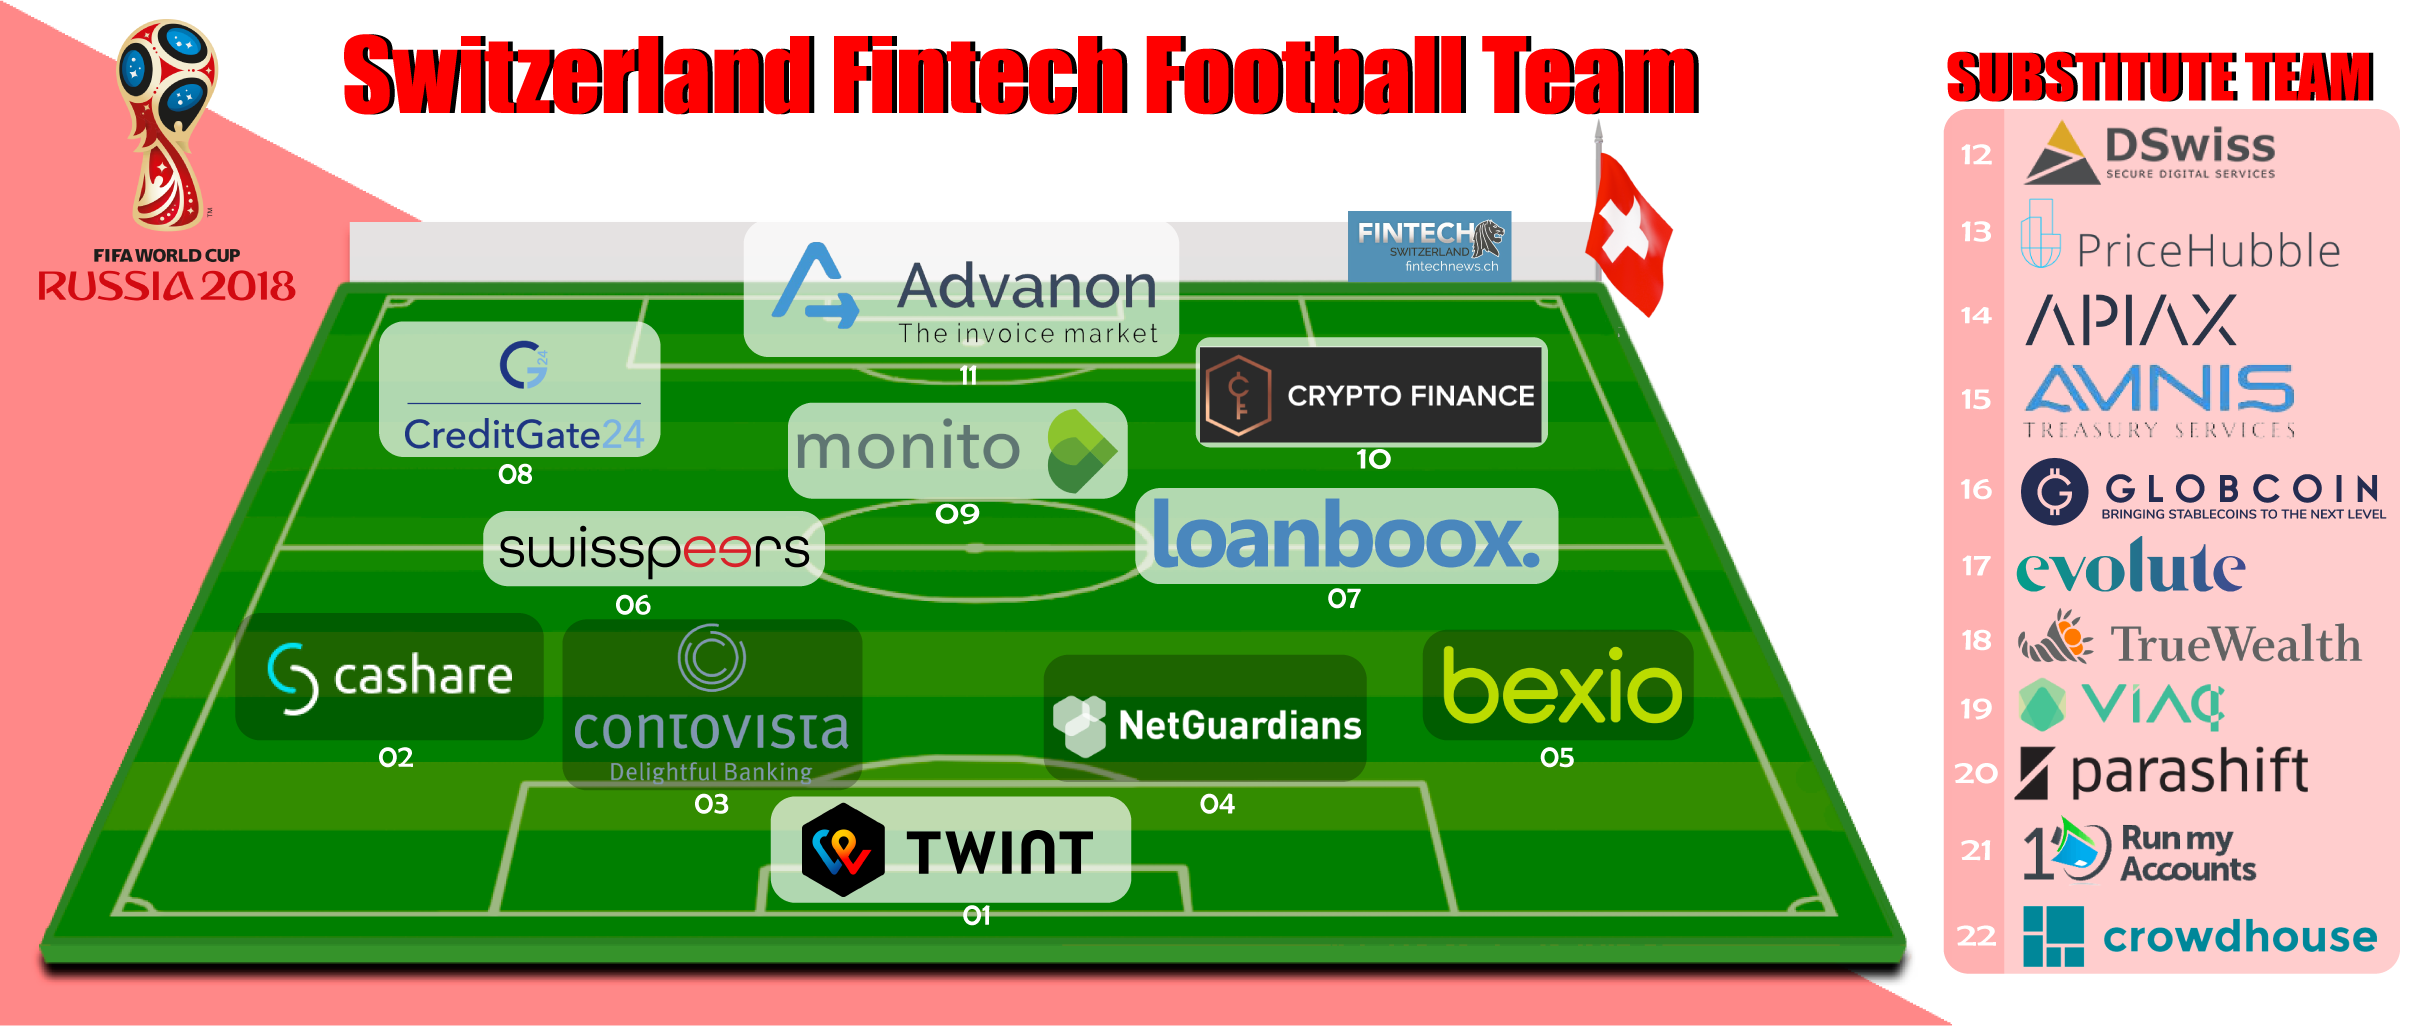 Swiss Fintech Switzerland Fottball Team